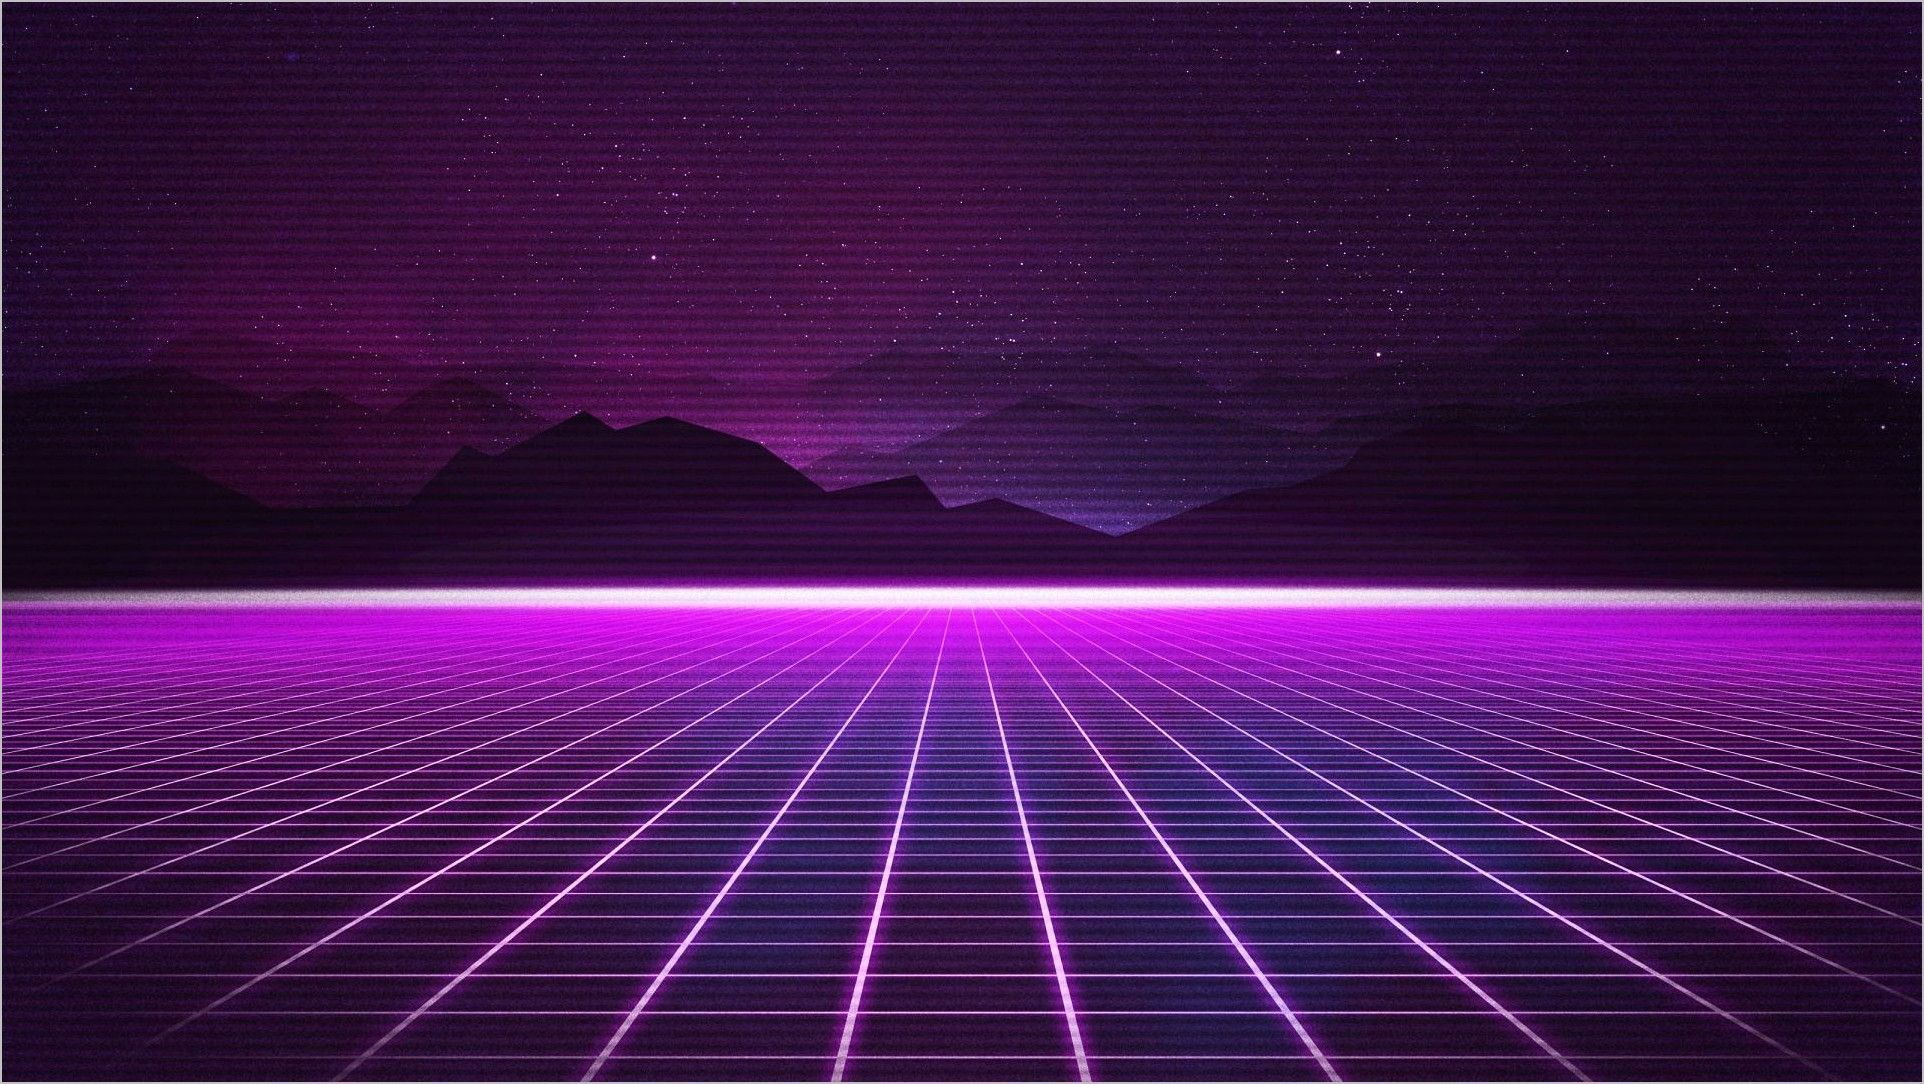 4k Wallpaper For Pc 19201080 Neon Geometric In 2020 Vaporwave Wallpaper Wallpaper Pc Retro Waves